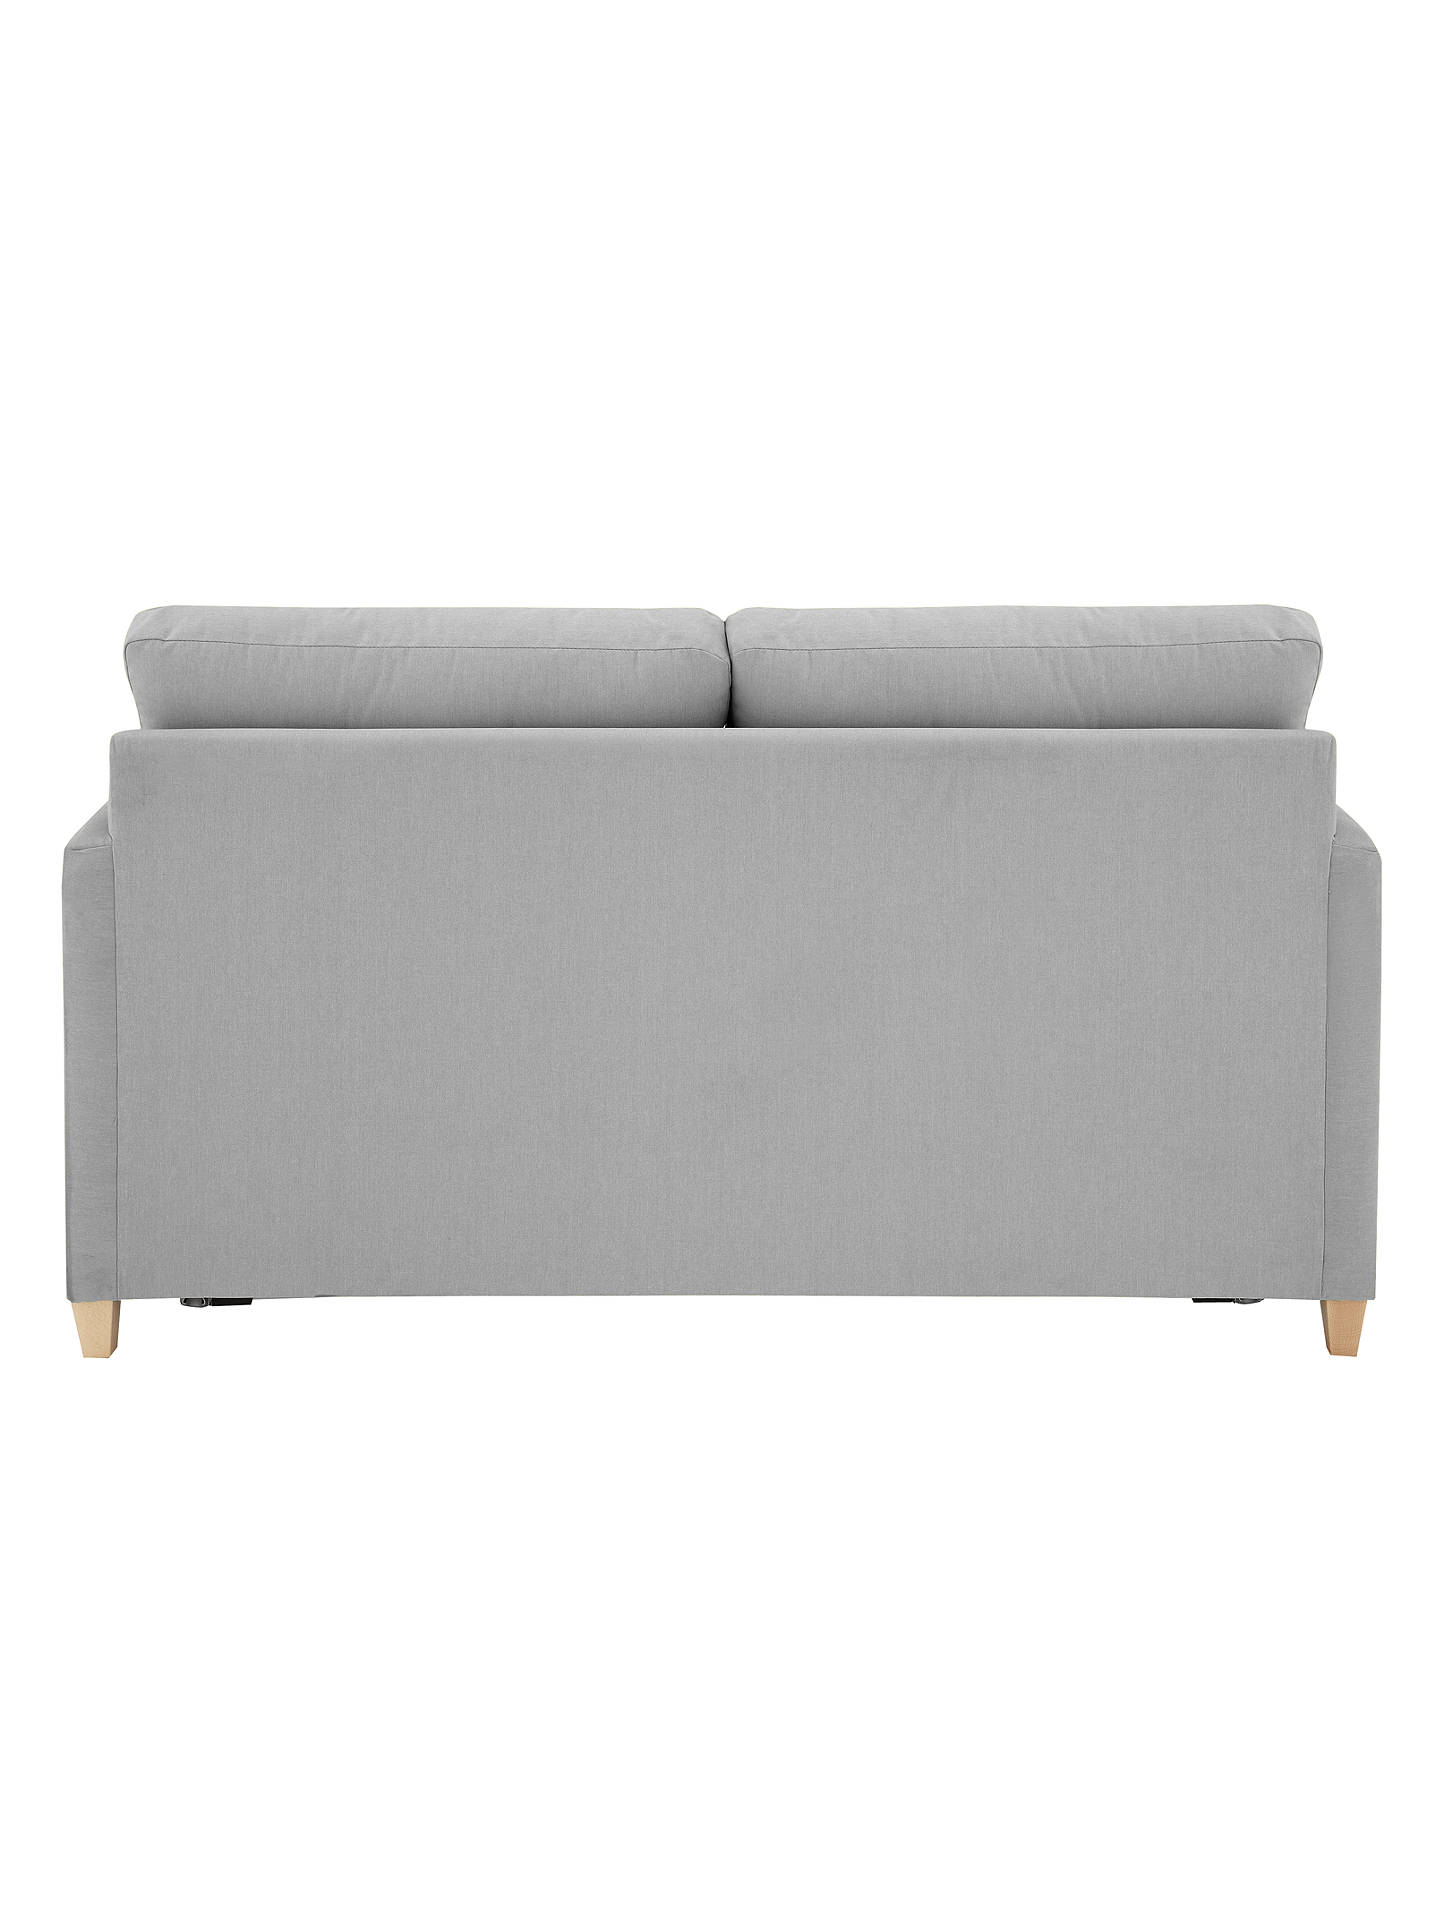 Marvelous John Lewis Partners Chopin Medium Pocket Sprung Sofa Bed Alphanode Cool Chair Designs And Ideas Alphanodeonline